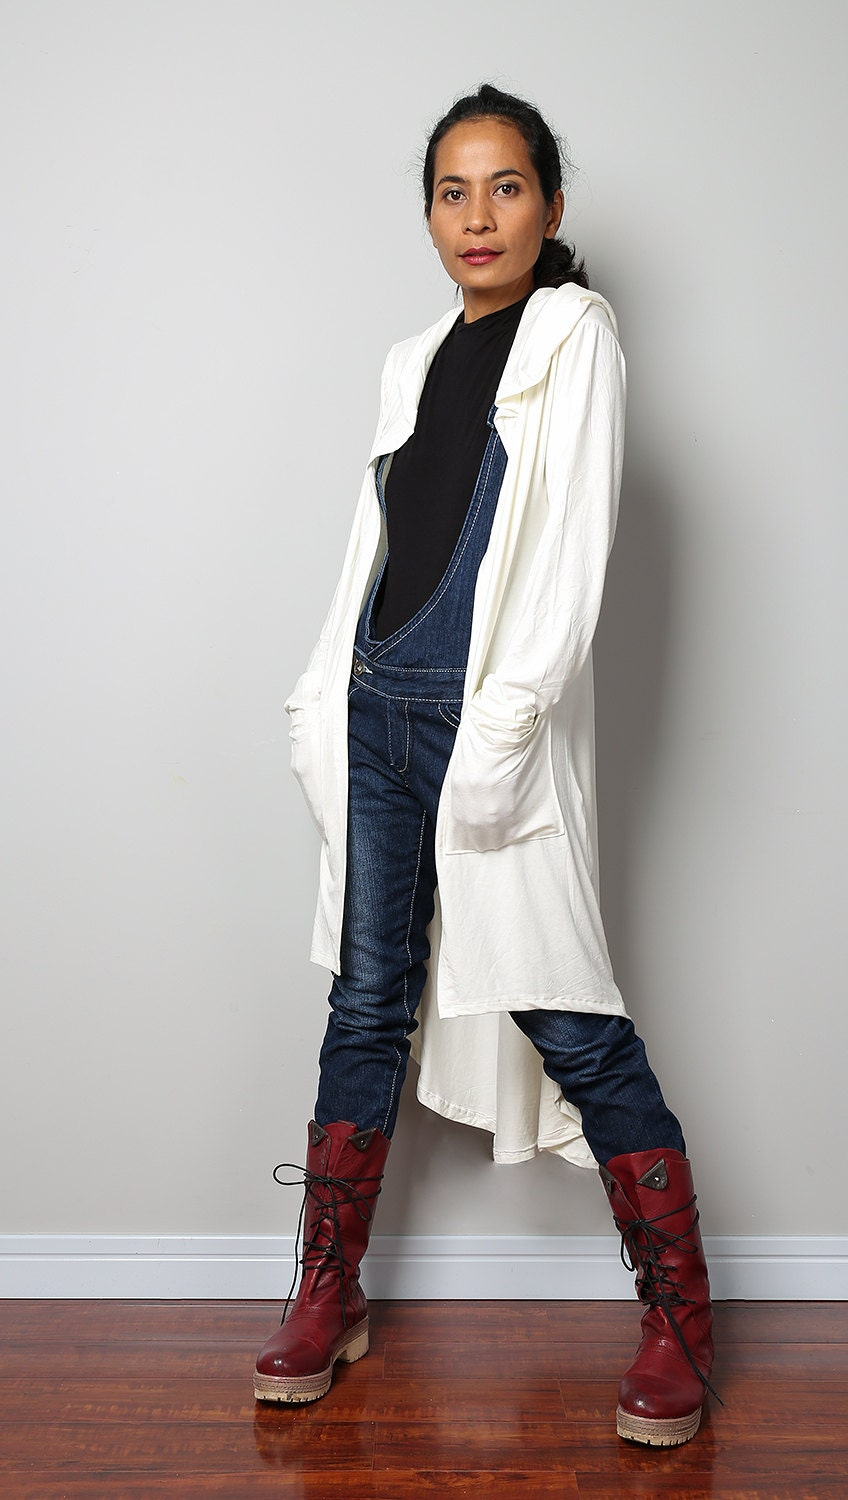 Long Hooded Cardigan / Off White Long Sleeved Cardigan : Urban